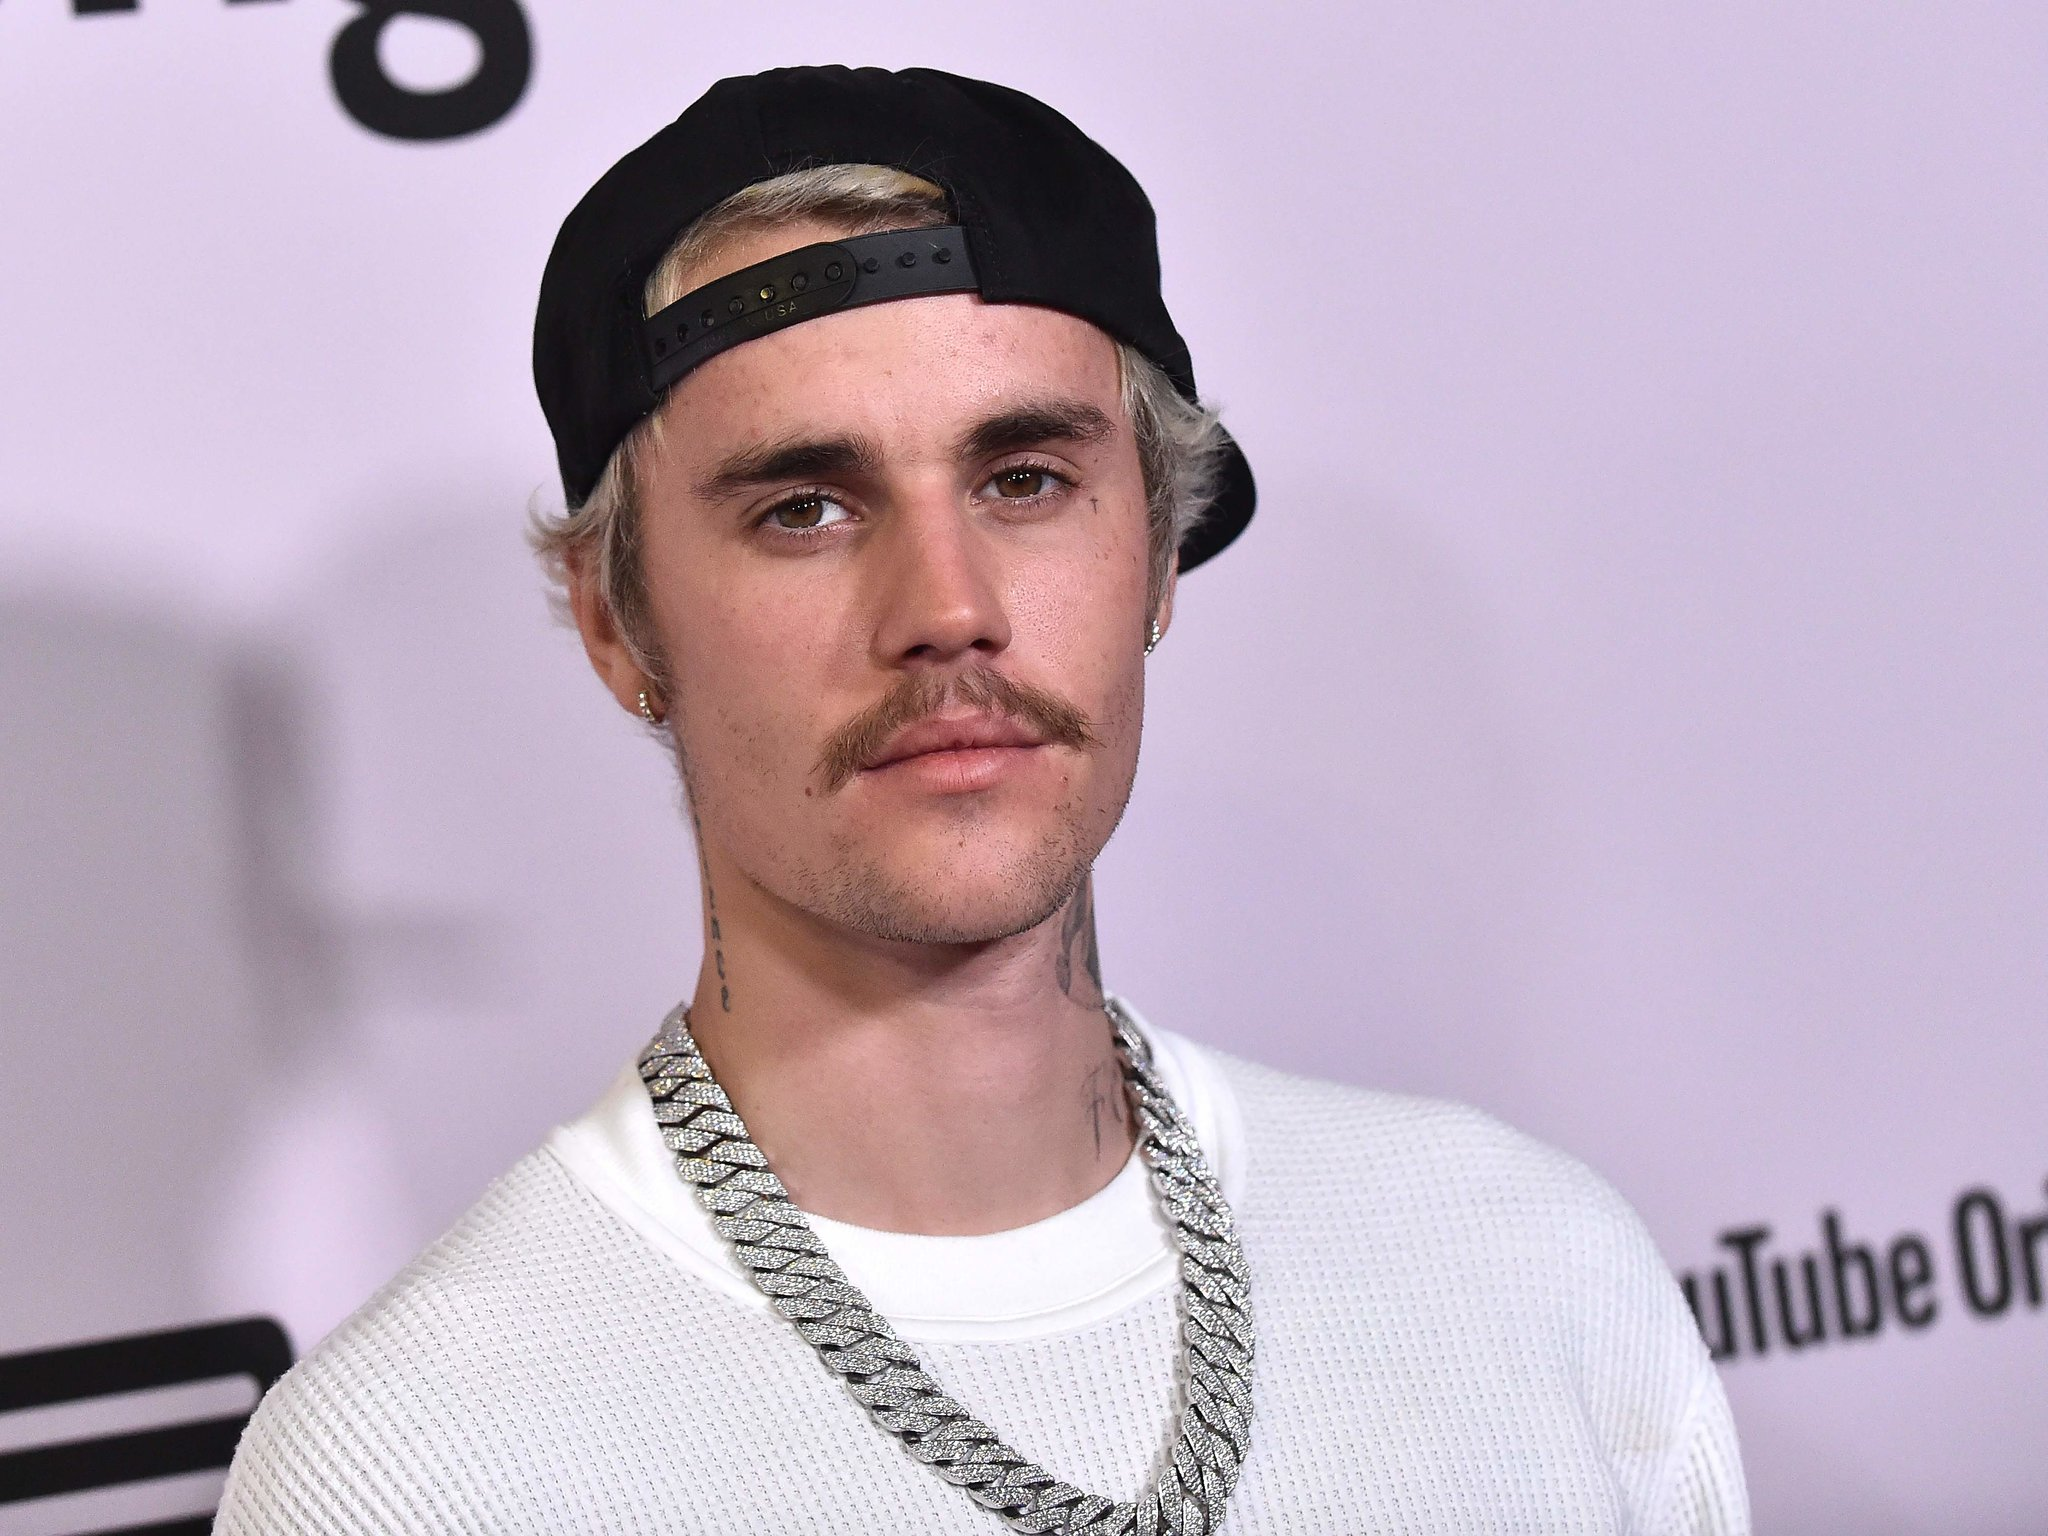 Justin Bieber Lonely Review: The pains of a Child Star